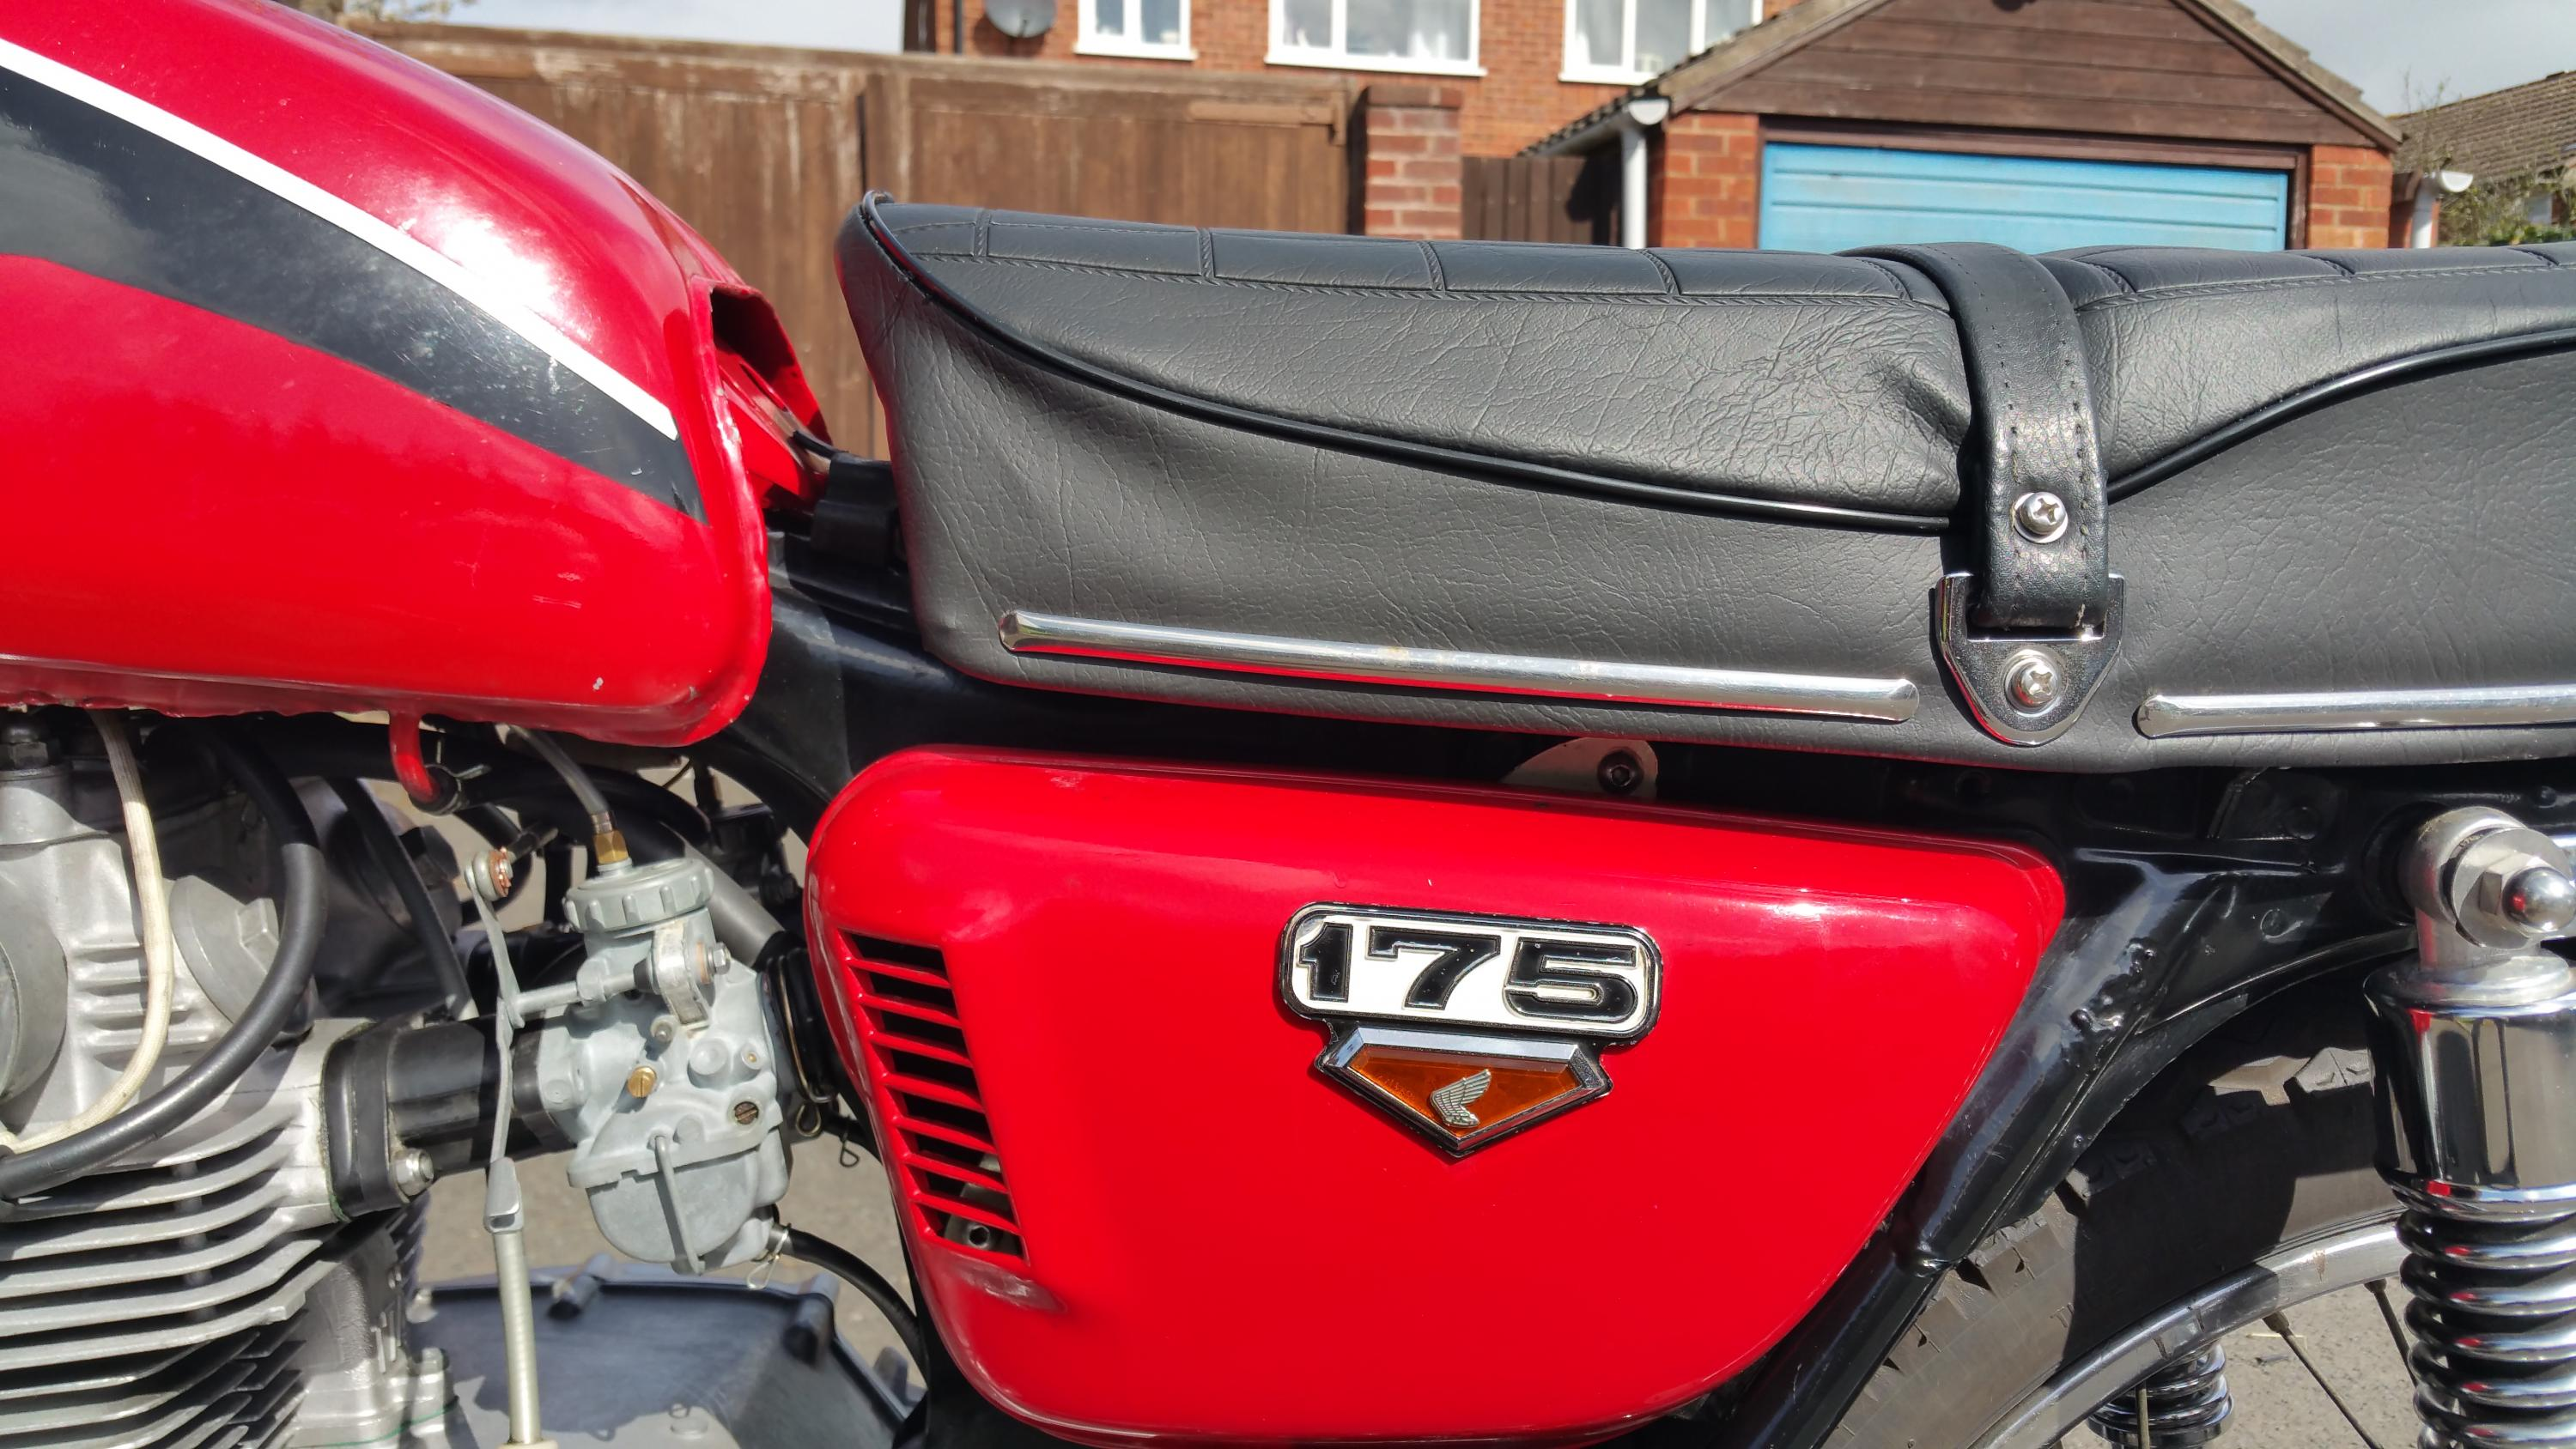 Any difference in a 1970 CB175 gas tank and the CL175?-20160503_102049.jpg